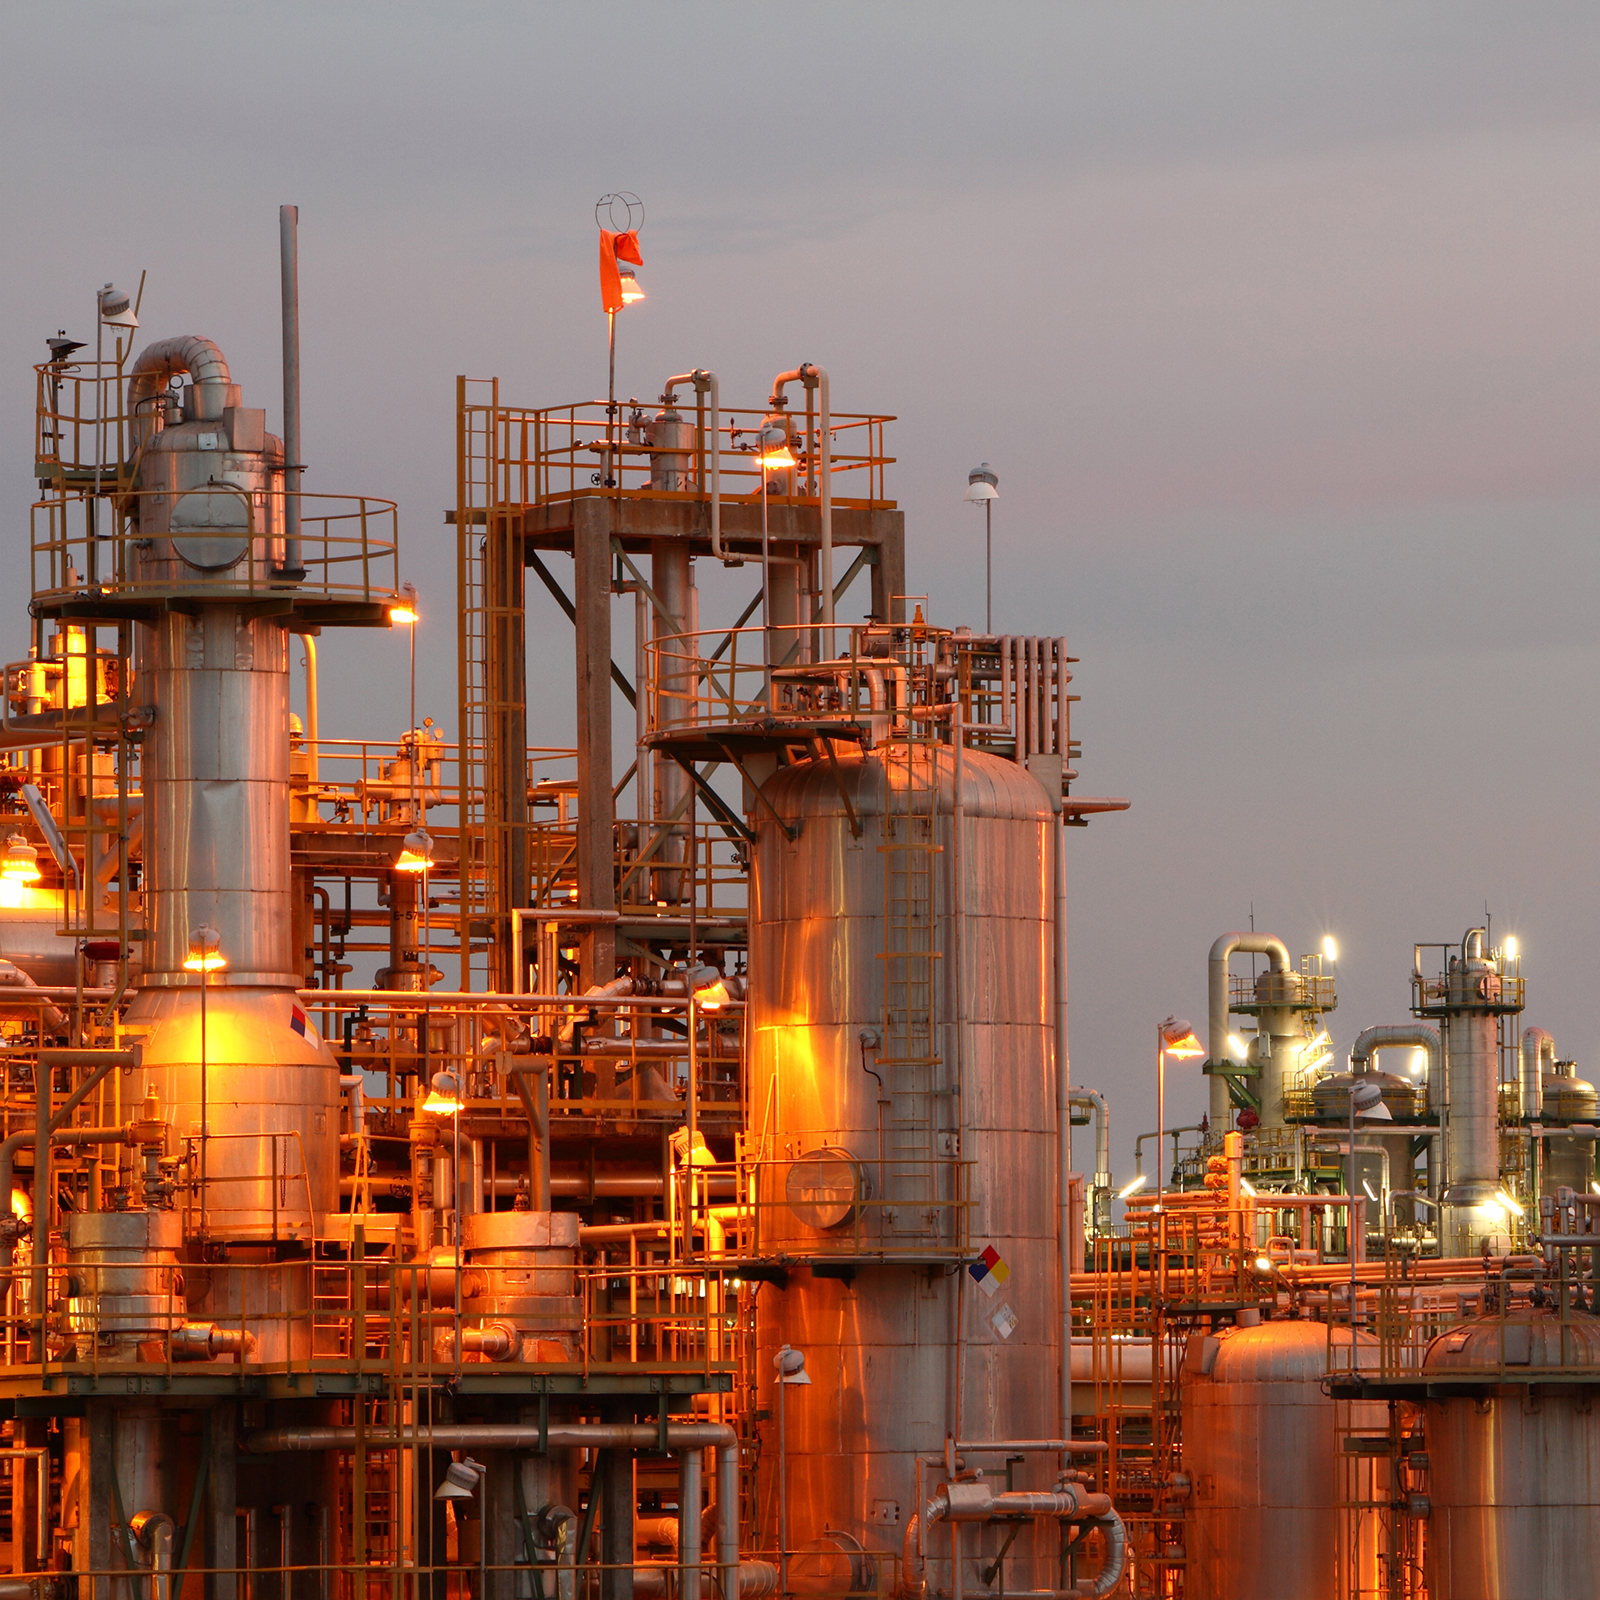 hacking-chemical-plant-FB